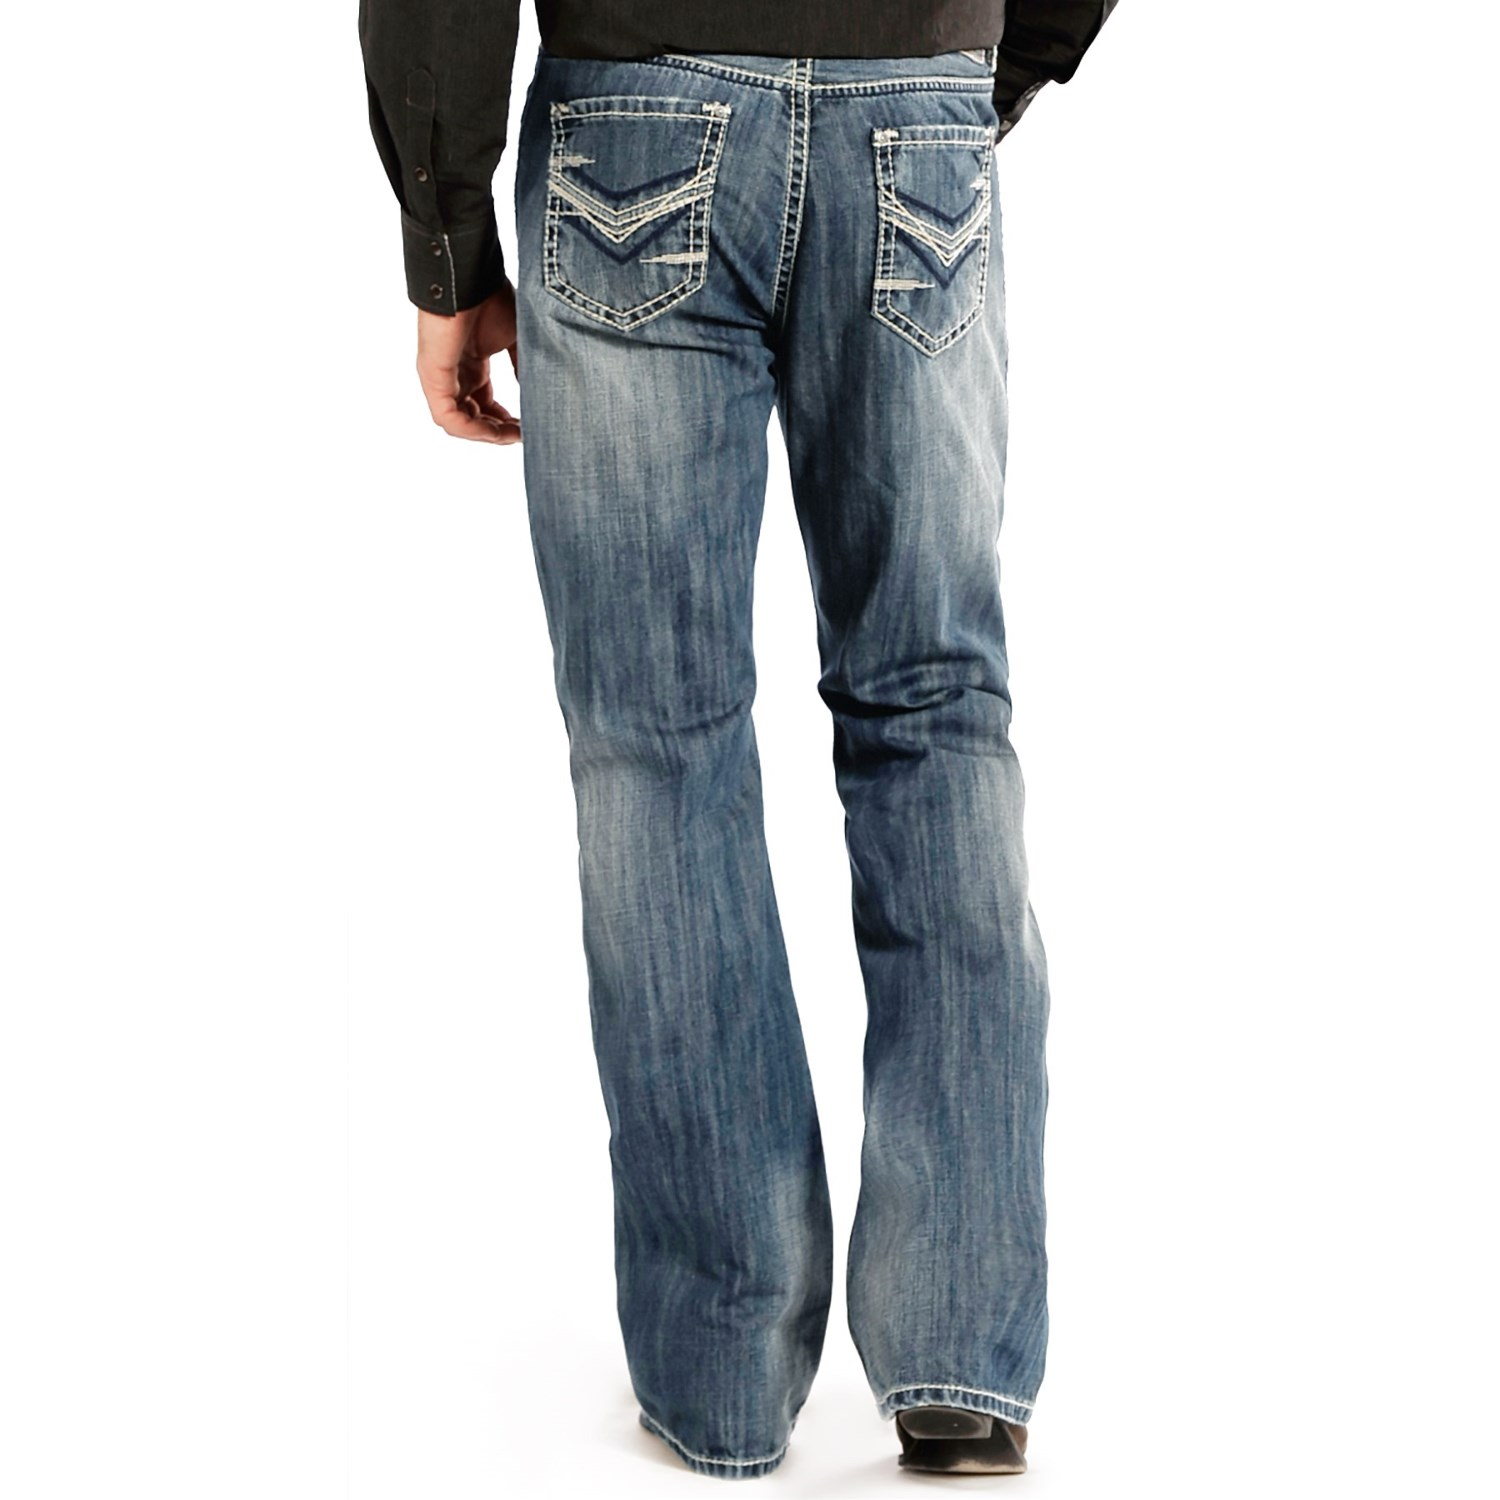 Men&39s relaxed fit bootcut jeans uk – Global fashion jeans models